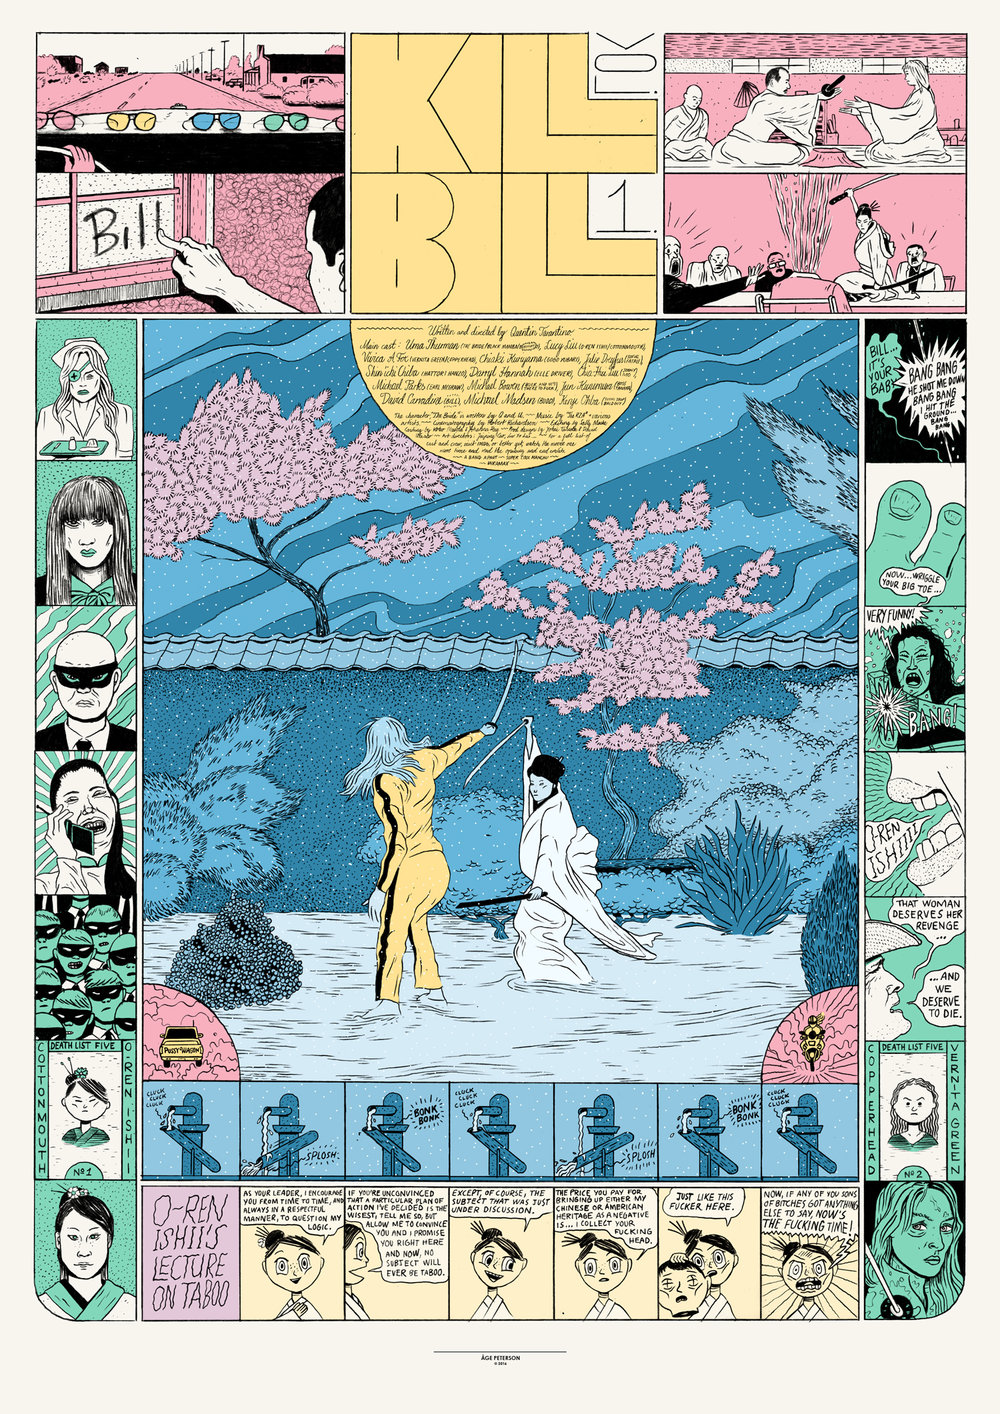 Kill-Bill-Vol1+©+Aage+Peterson+2016.jpg